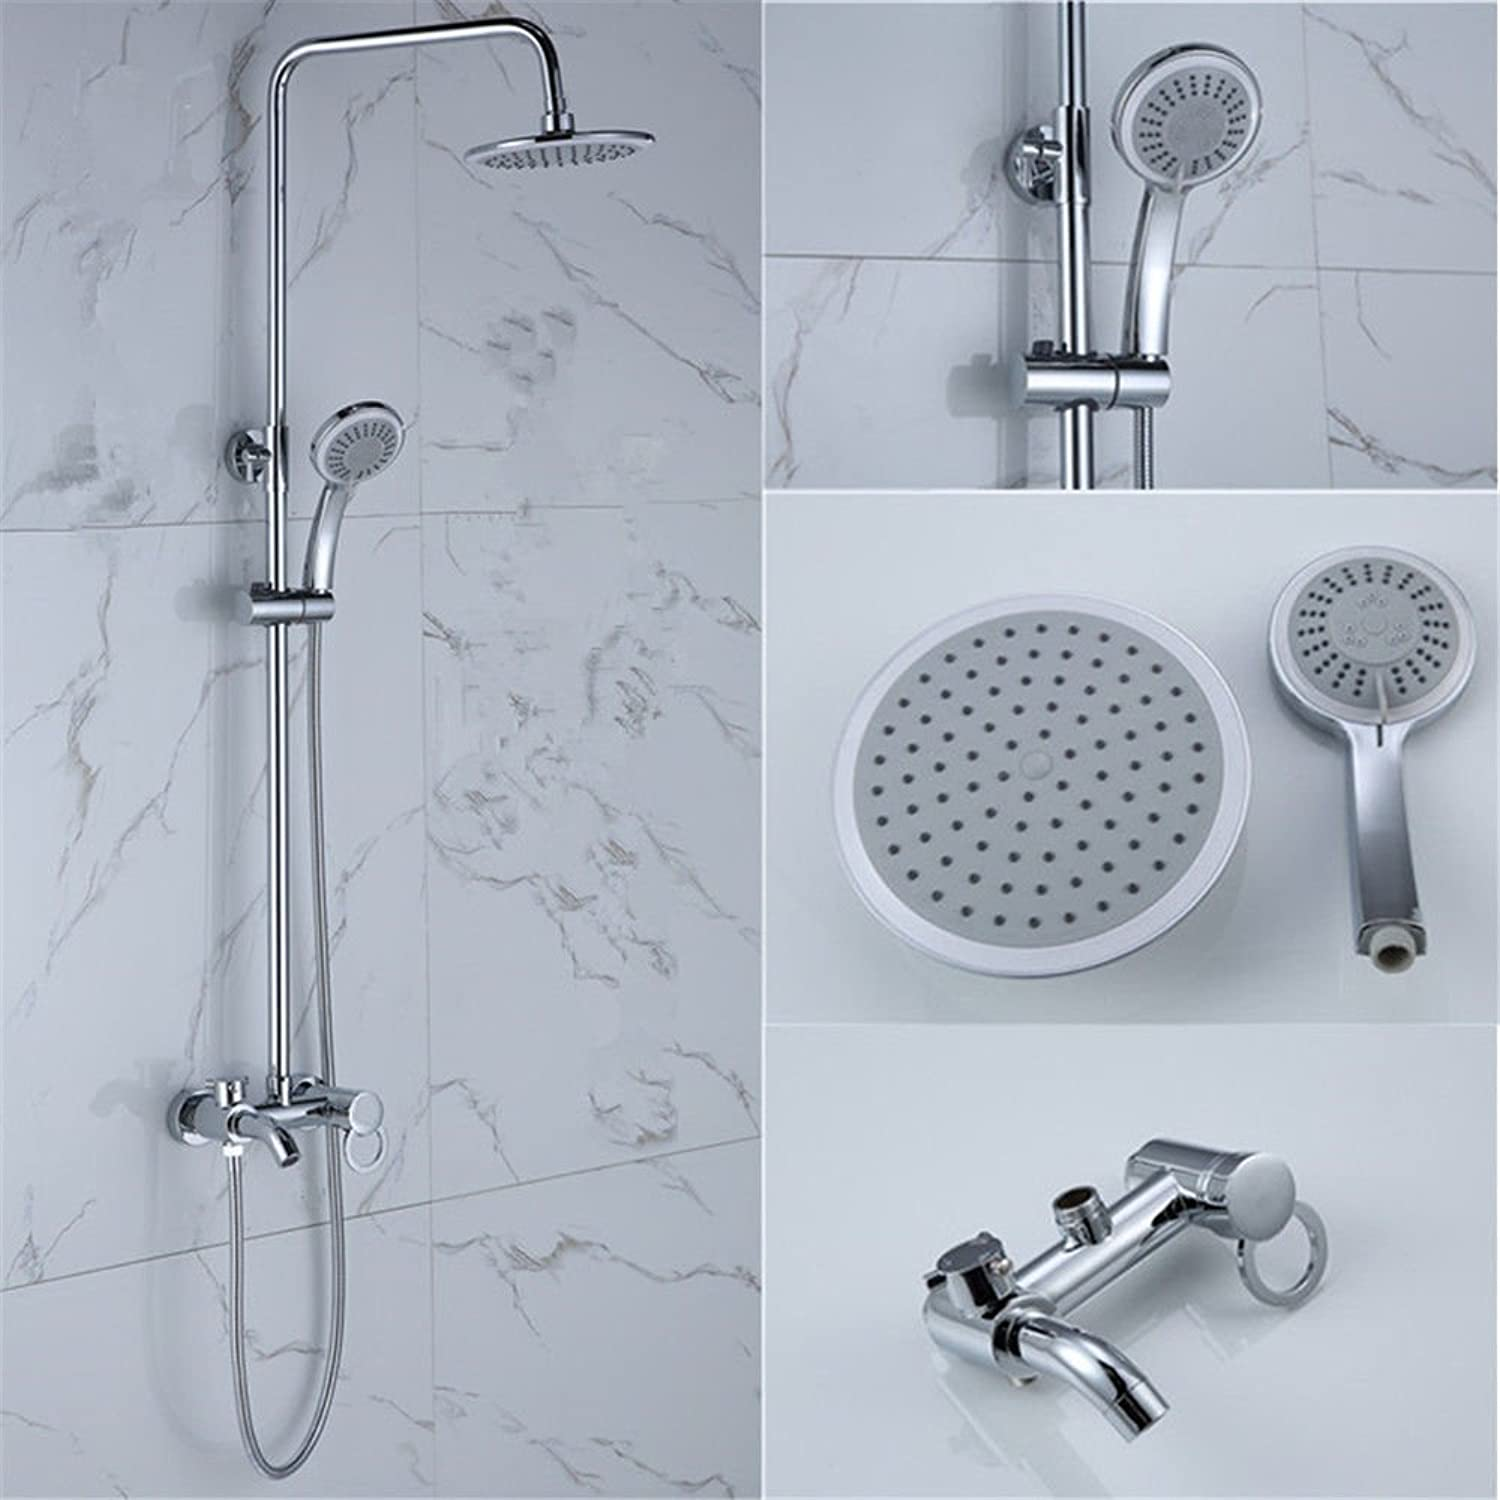 AQMMi Bathroom Sink Mixer Tap Brass Shower Set Single Lever Taps for Bathroom Sink